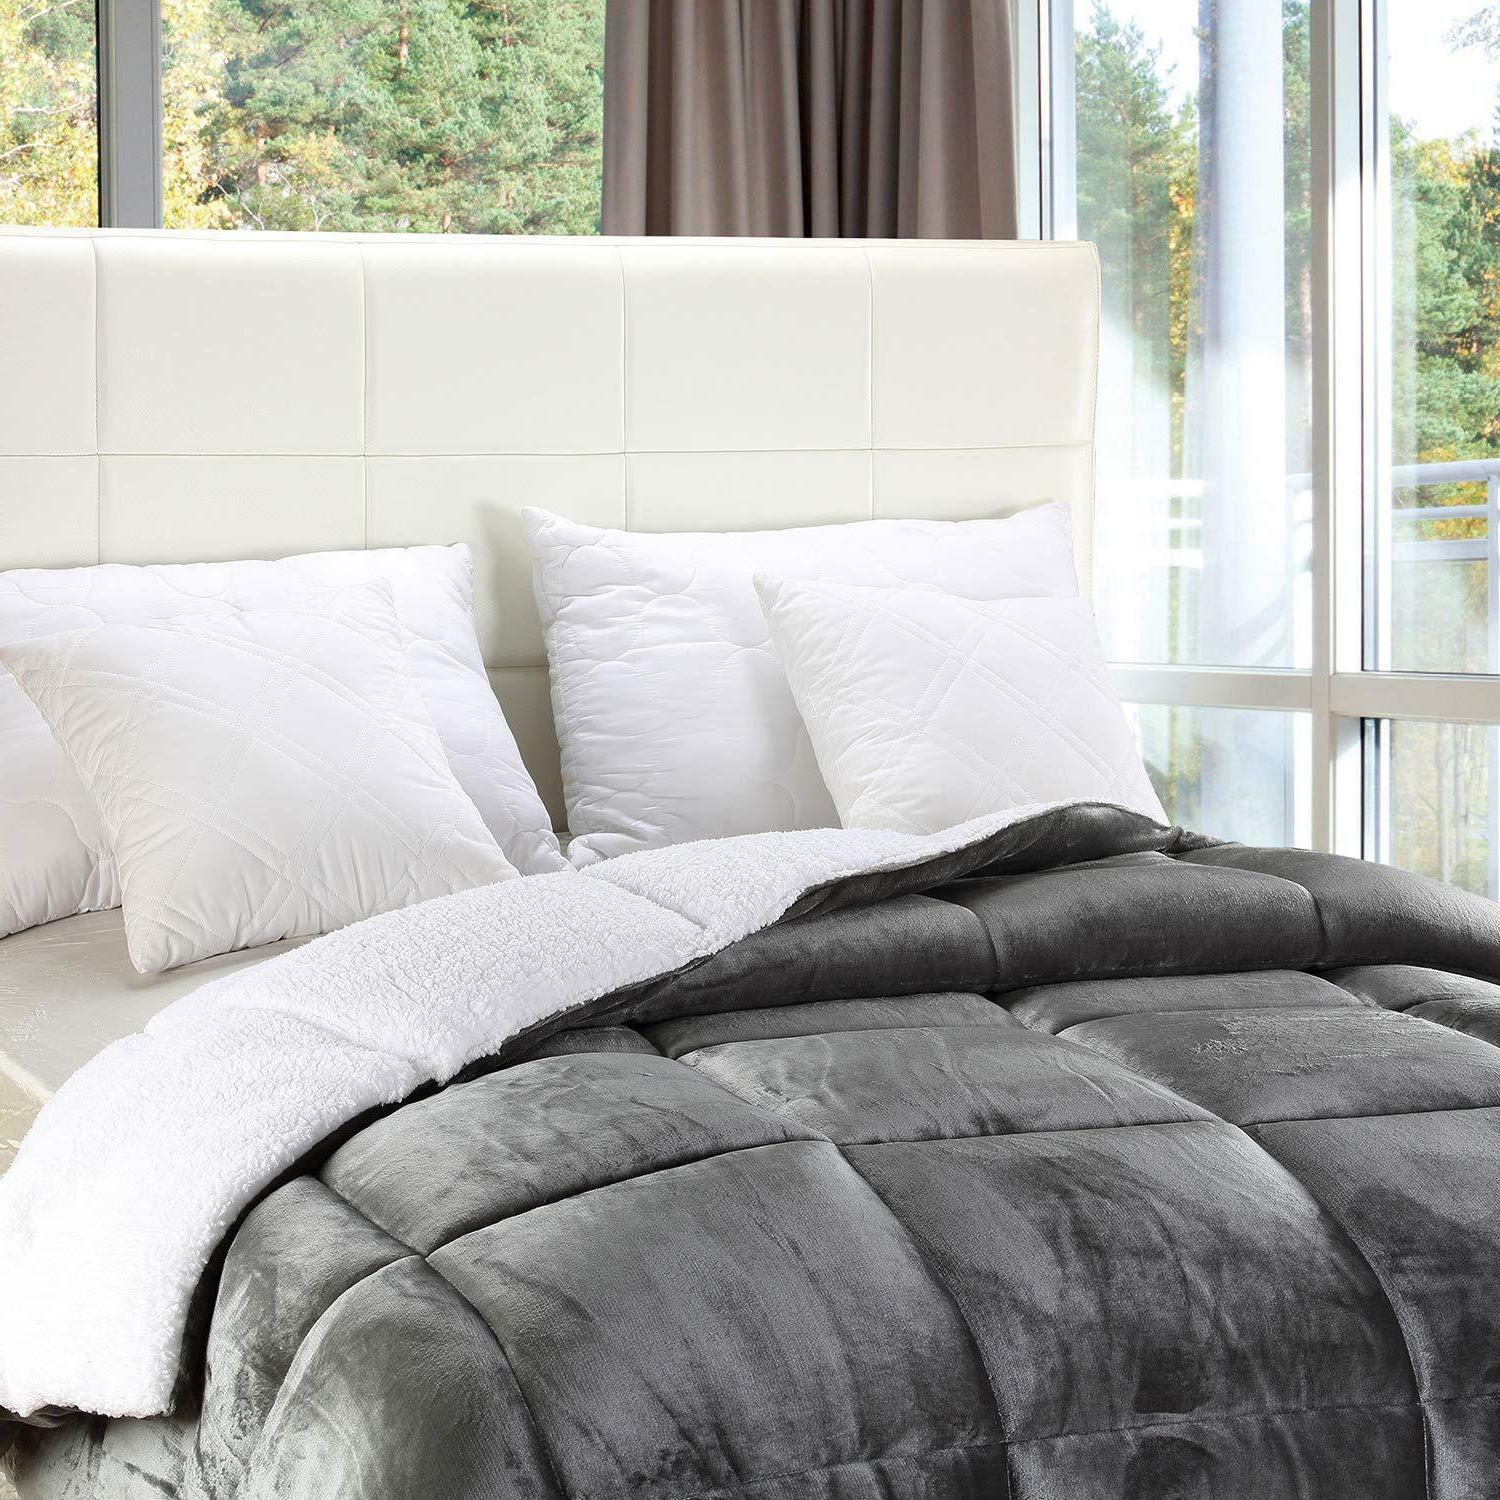 All Sherpa Comforter